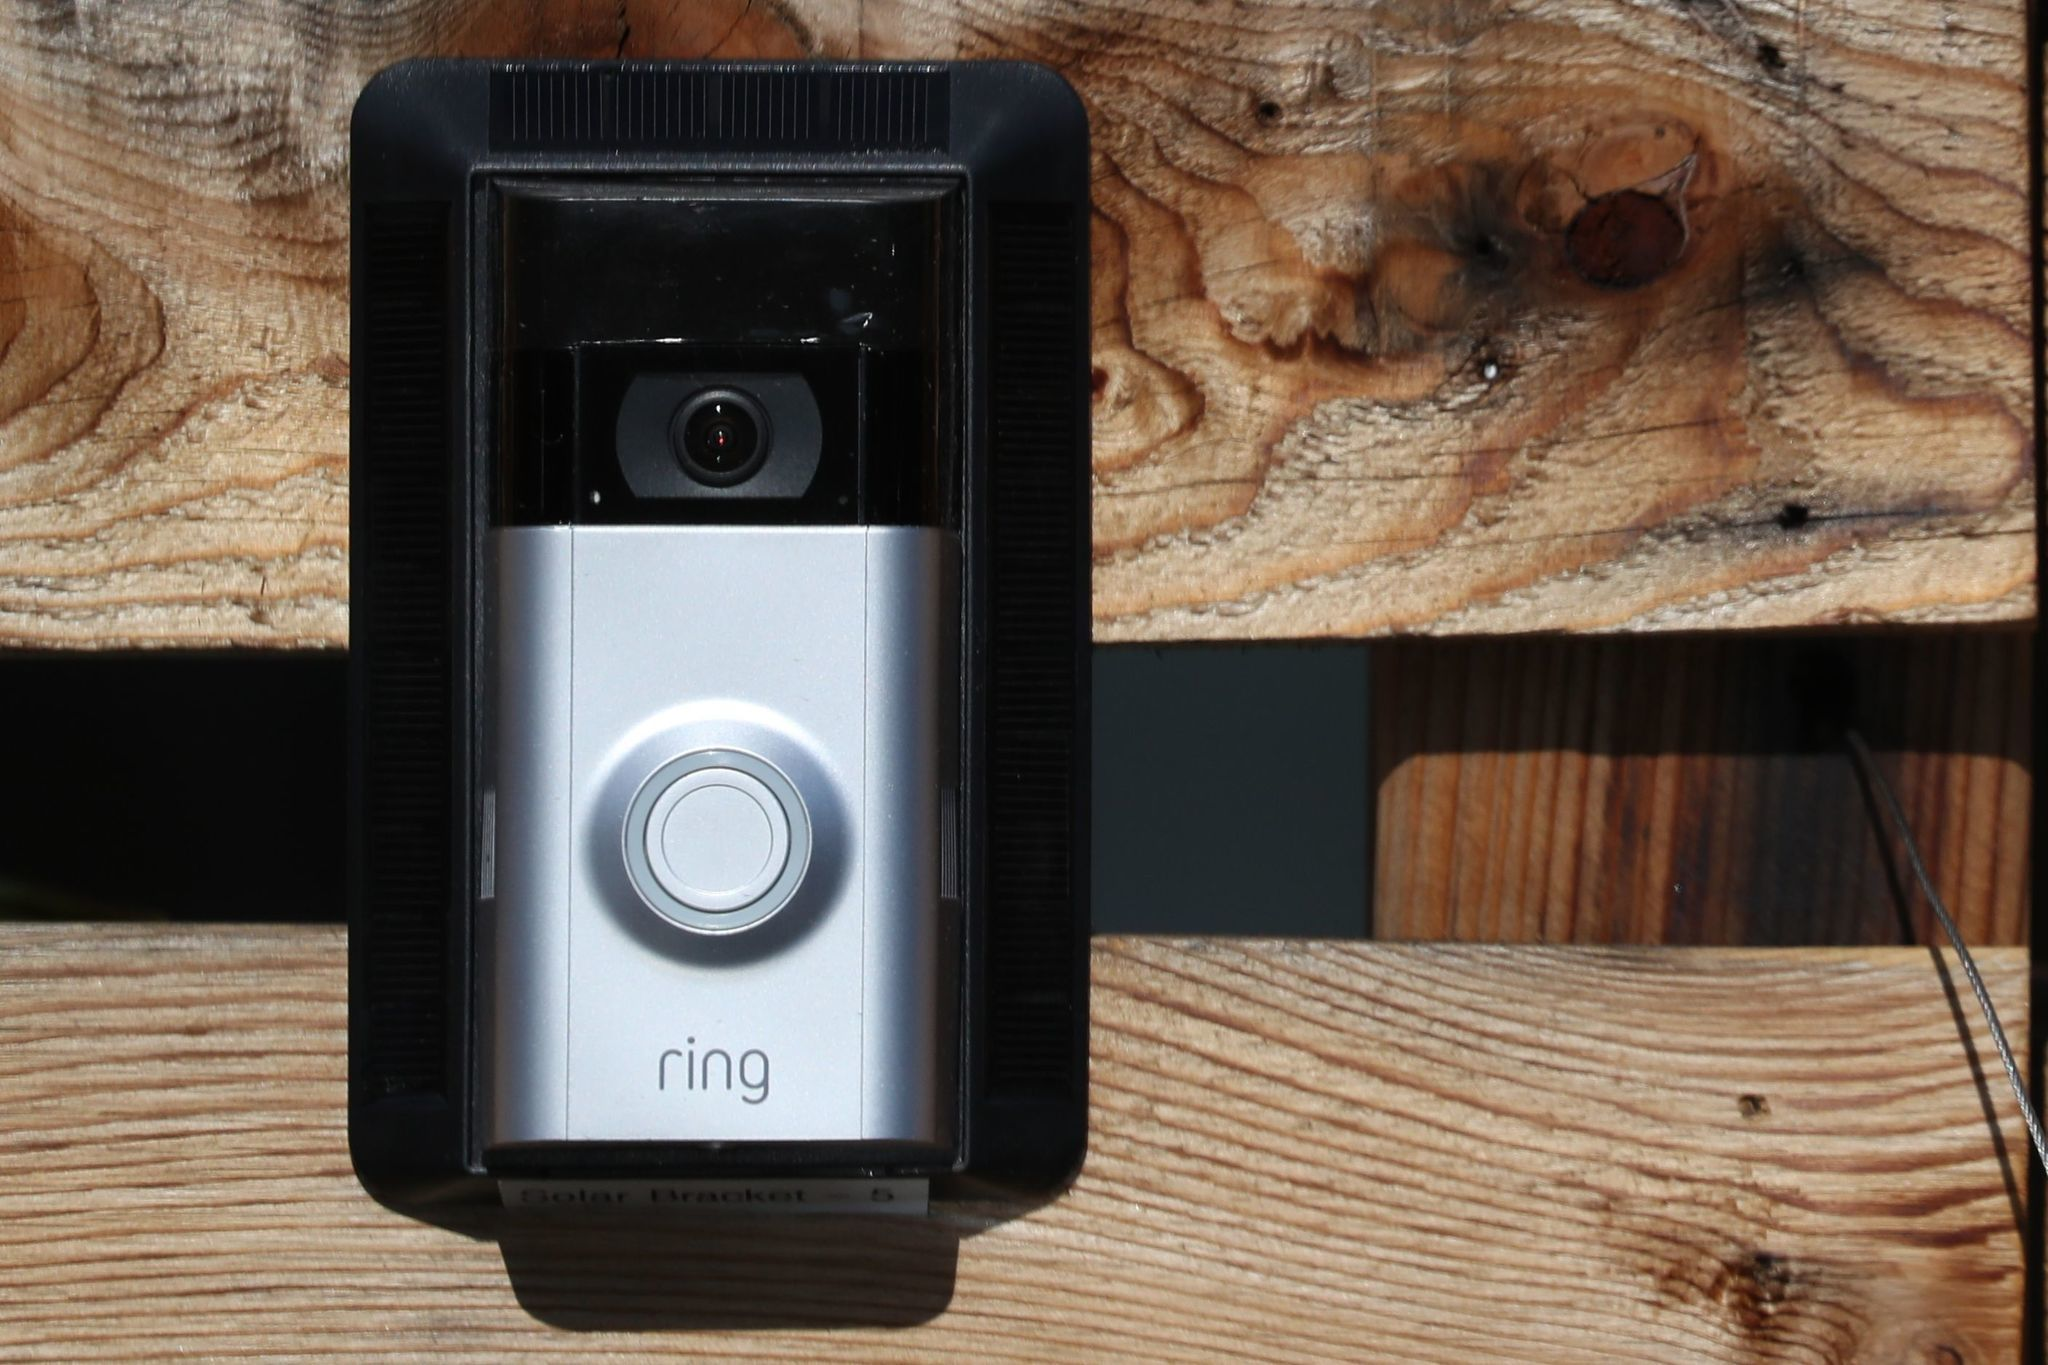 & Amazon is buying smart-doorbell maker Ring - Chicago Tribune